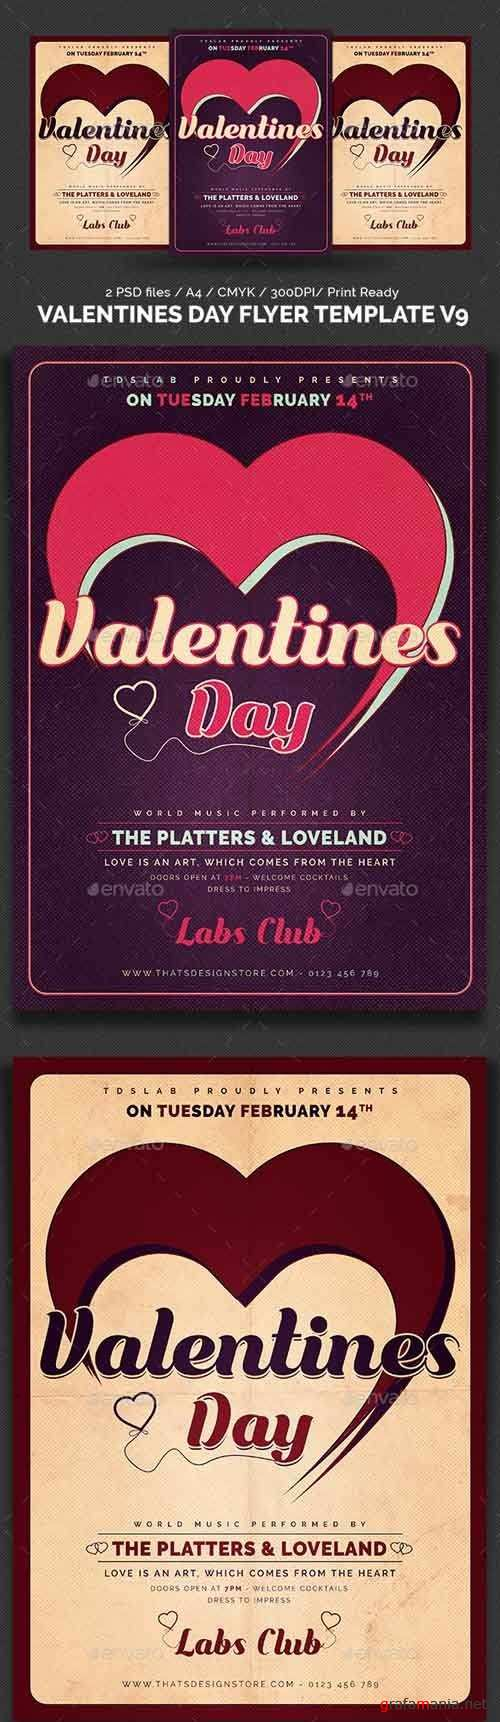 Valentines Day Flyer Template V9 - 1168094